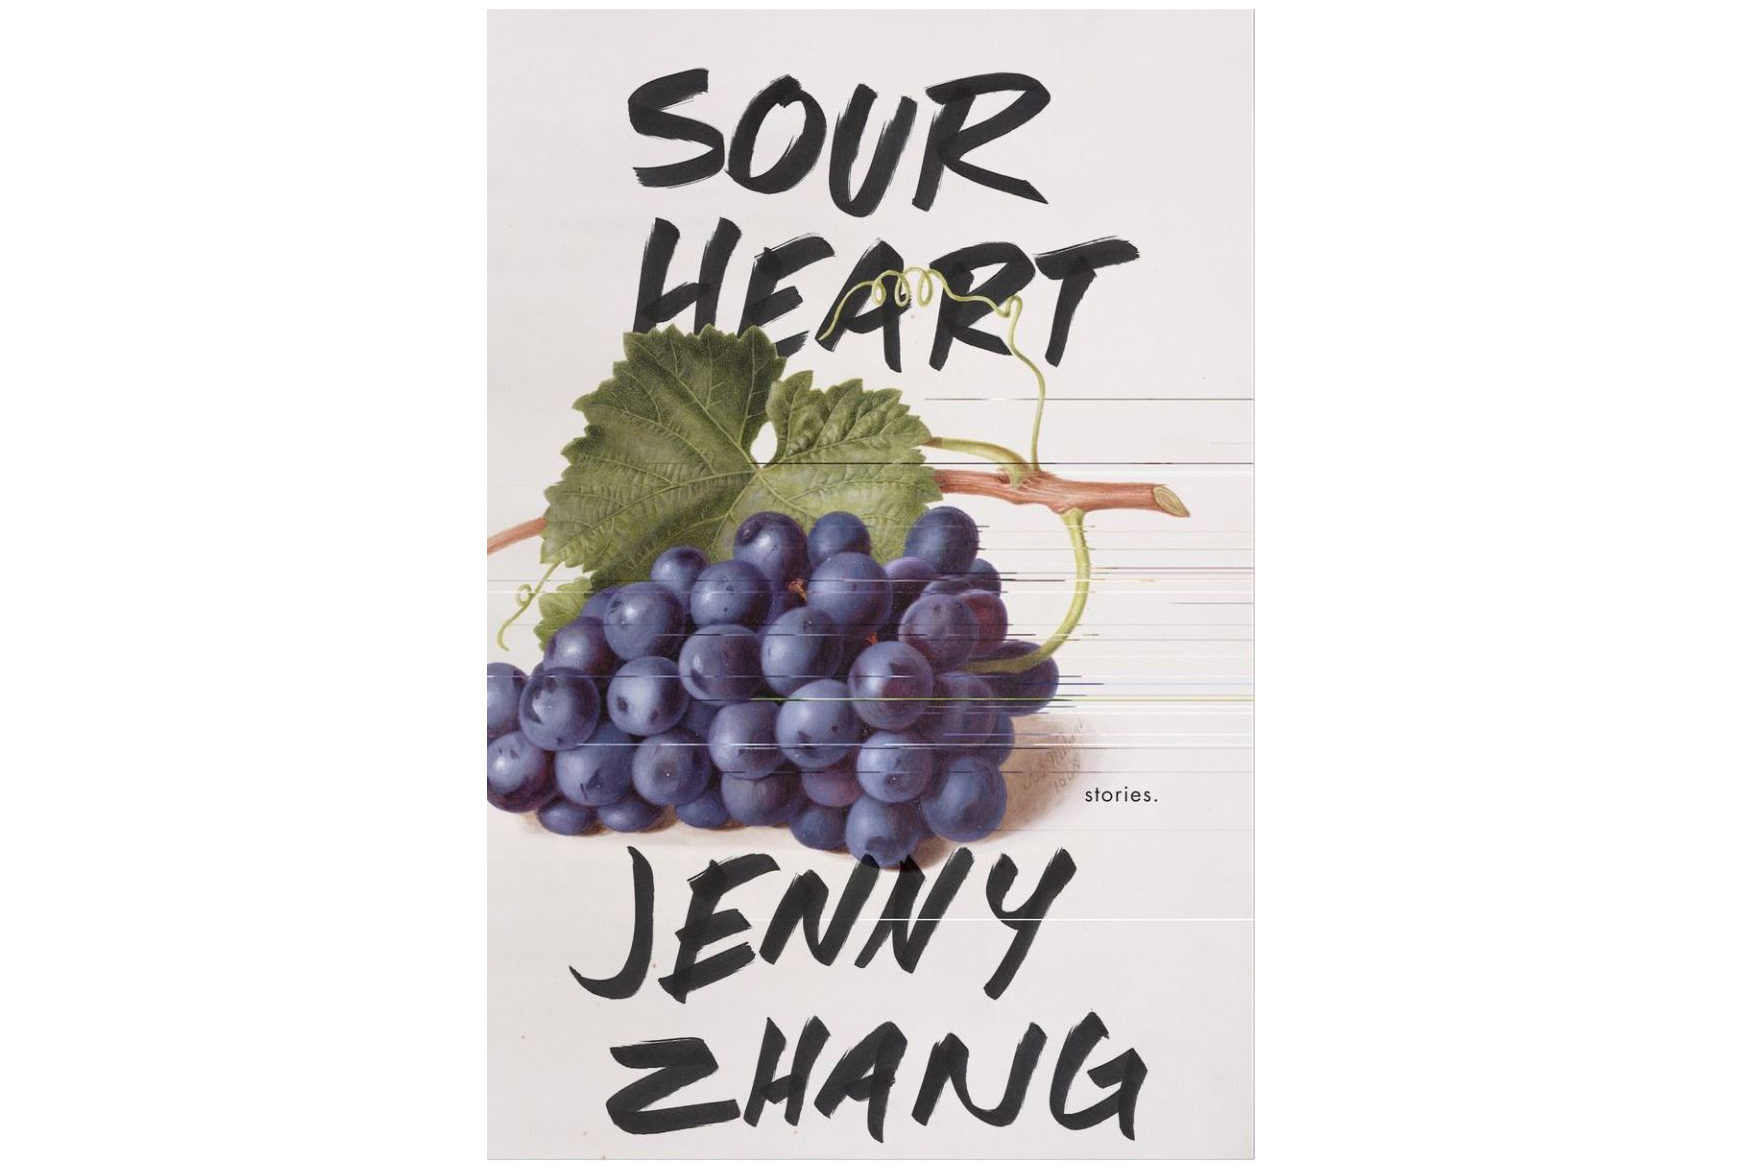 Sour Heart, by Jenny Zhang